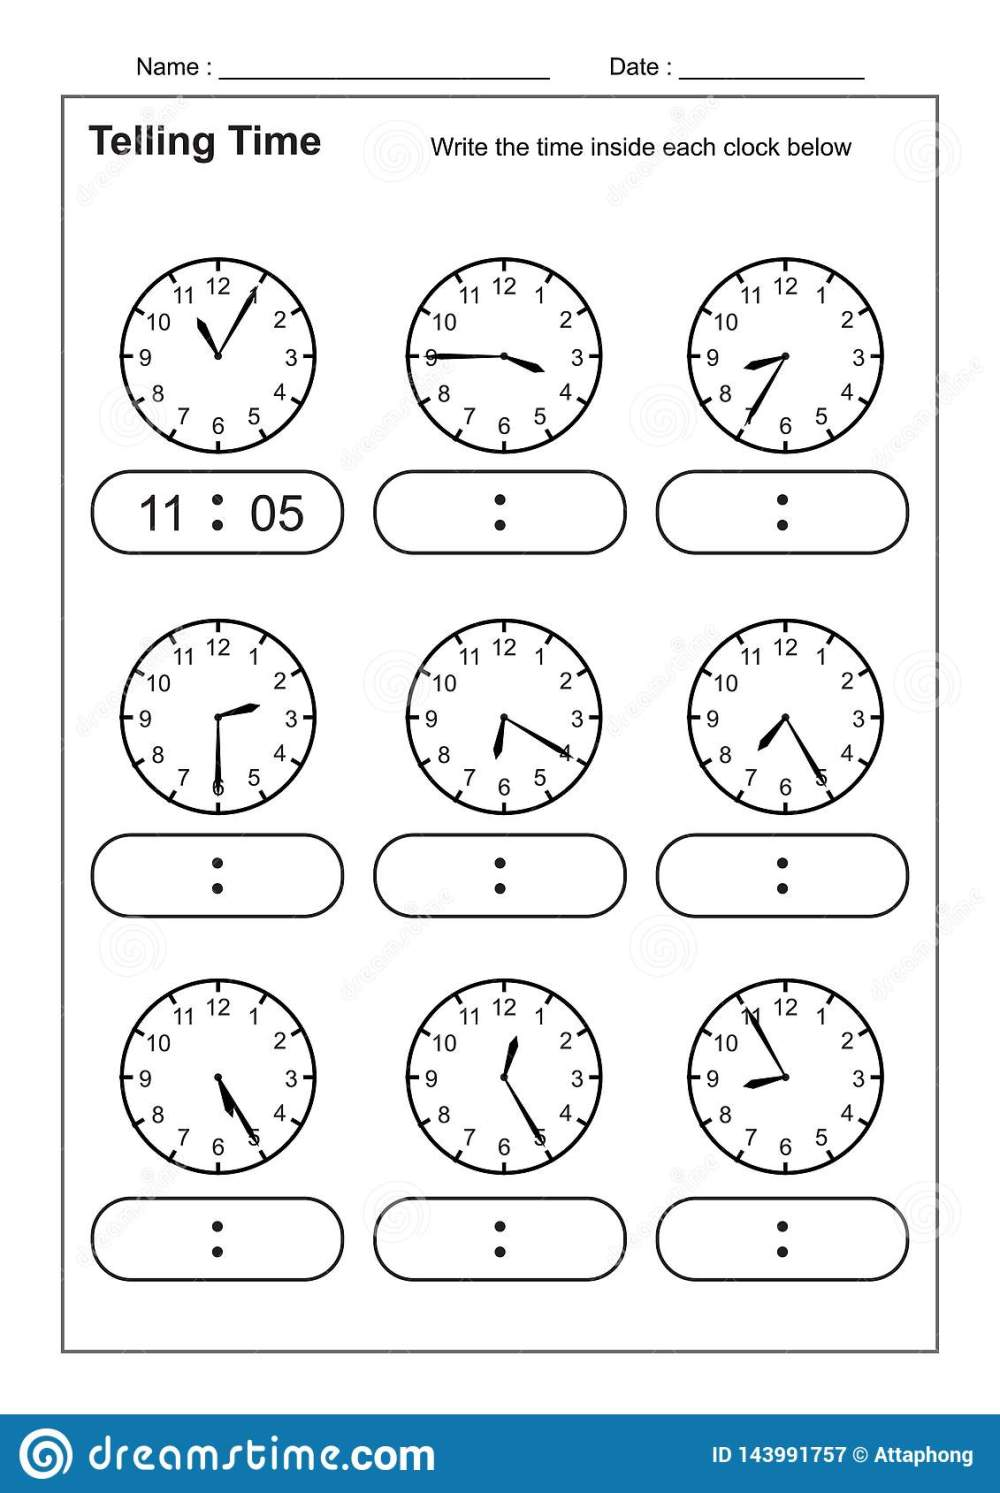 medium resolution of Telling Time Telling The Time Practice For Children Time Worksheets For  Learning To Tell Time Game Time Worksheets Stock Vector - Illustration of  kindergarten